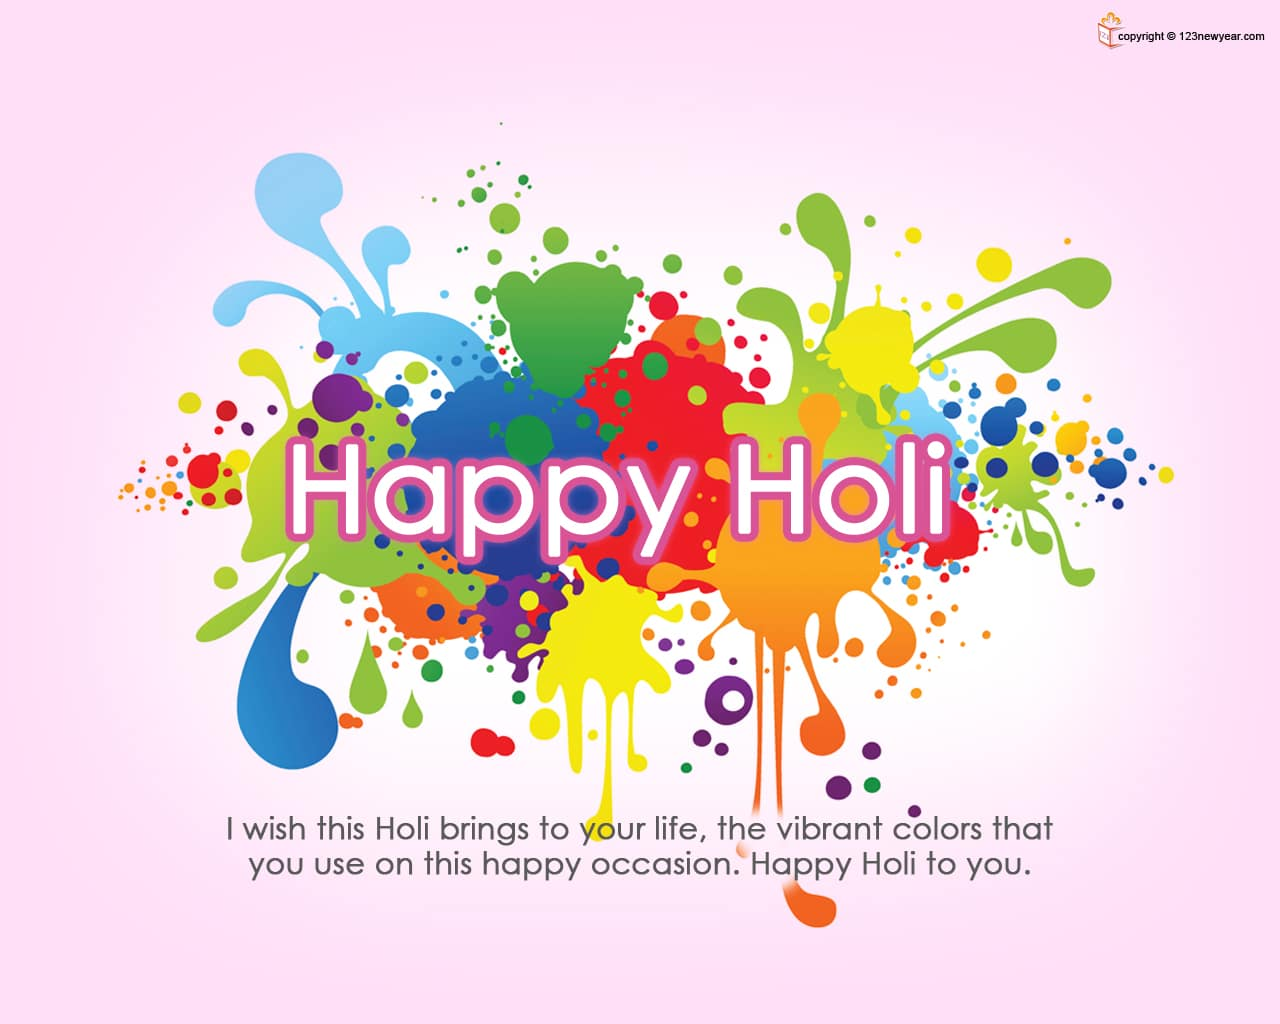 Happy Holi Images Photos and Wallpapers HD